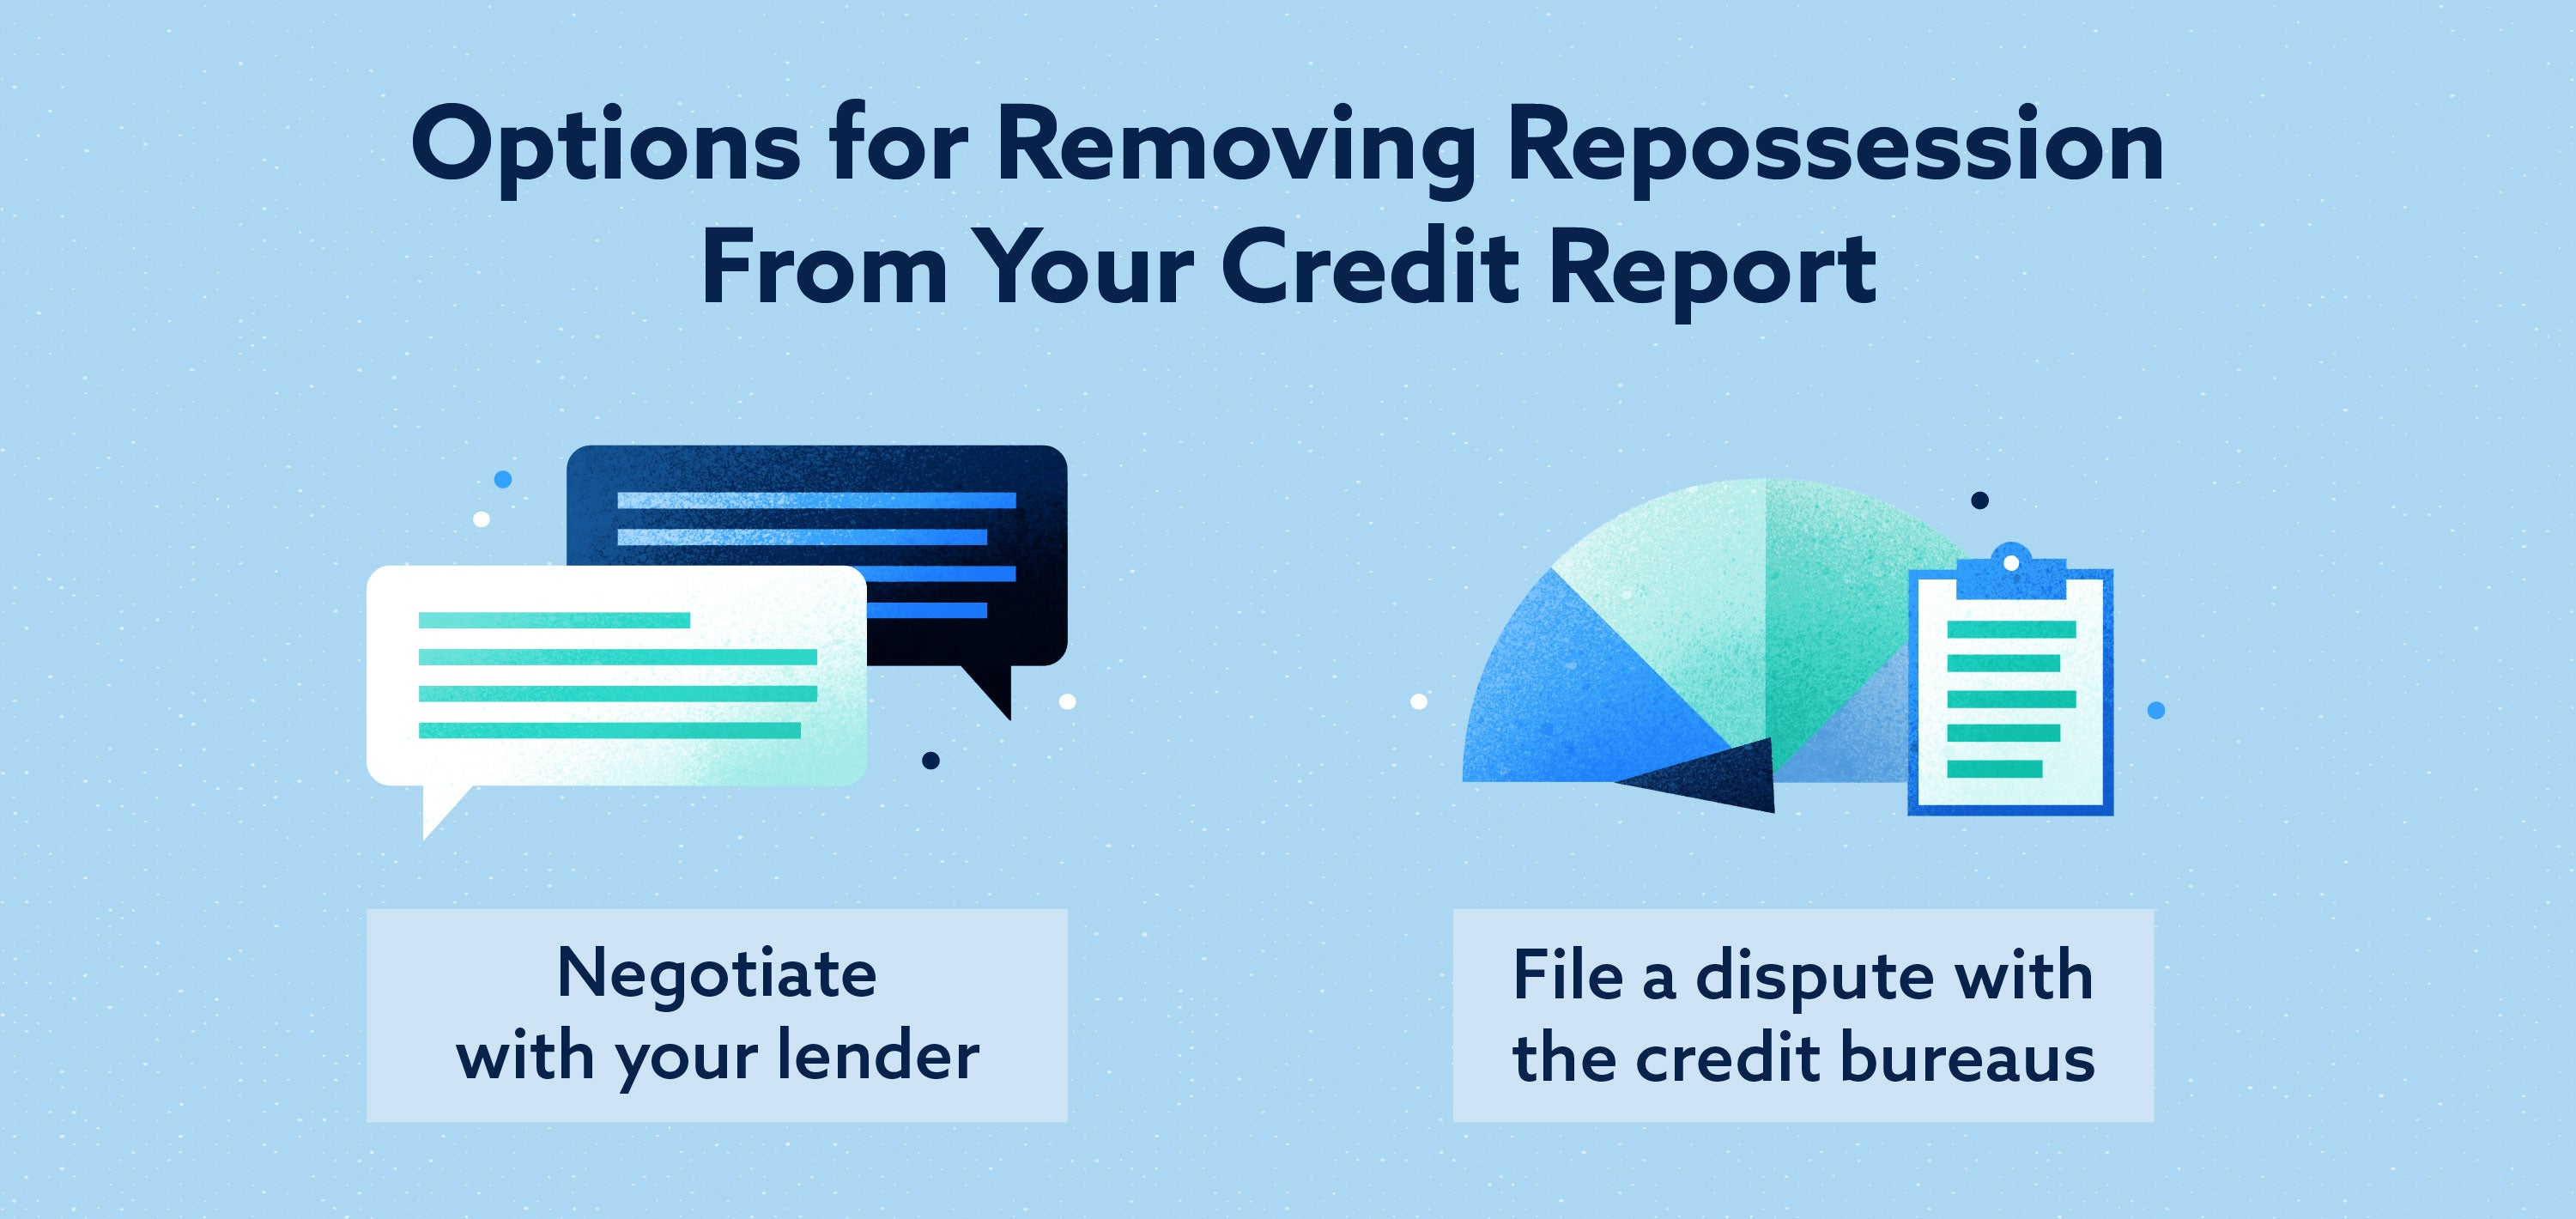 Options for Removing Repossession from your credit report Image